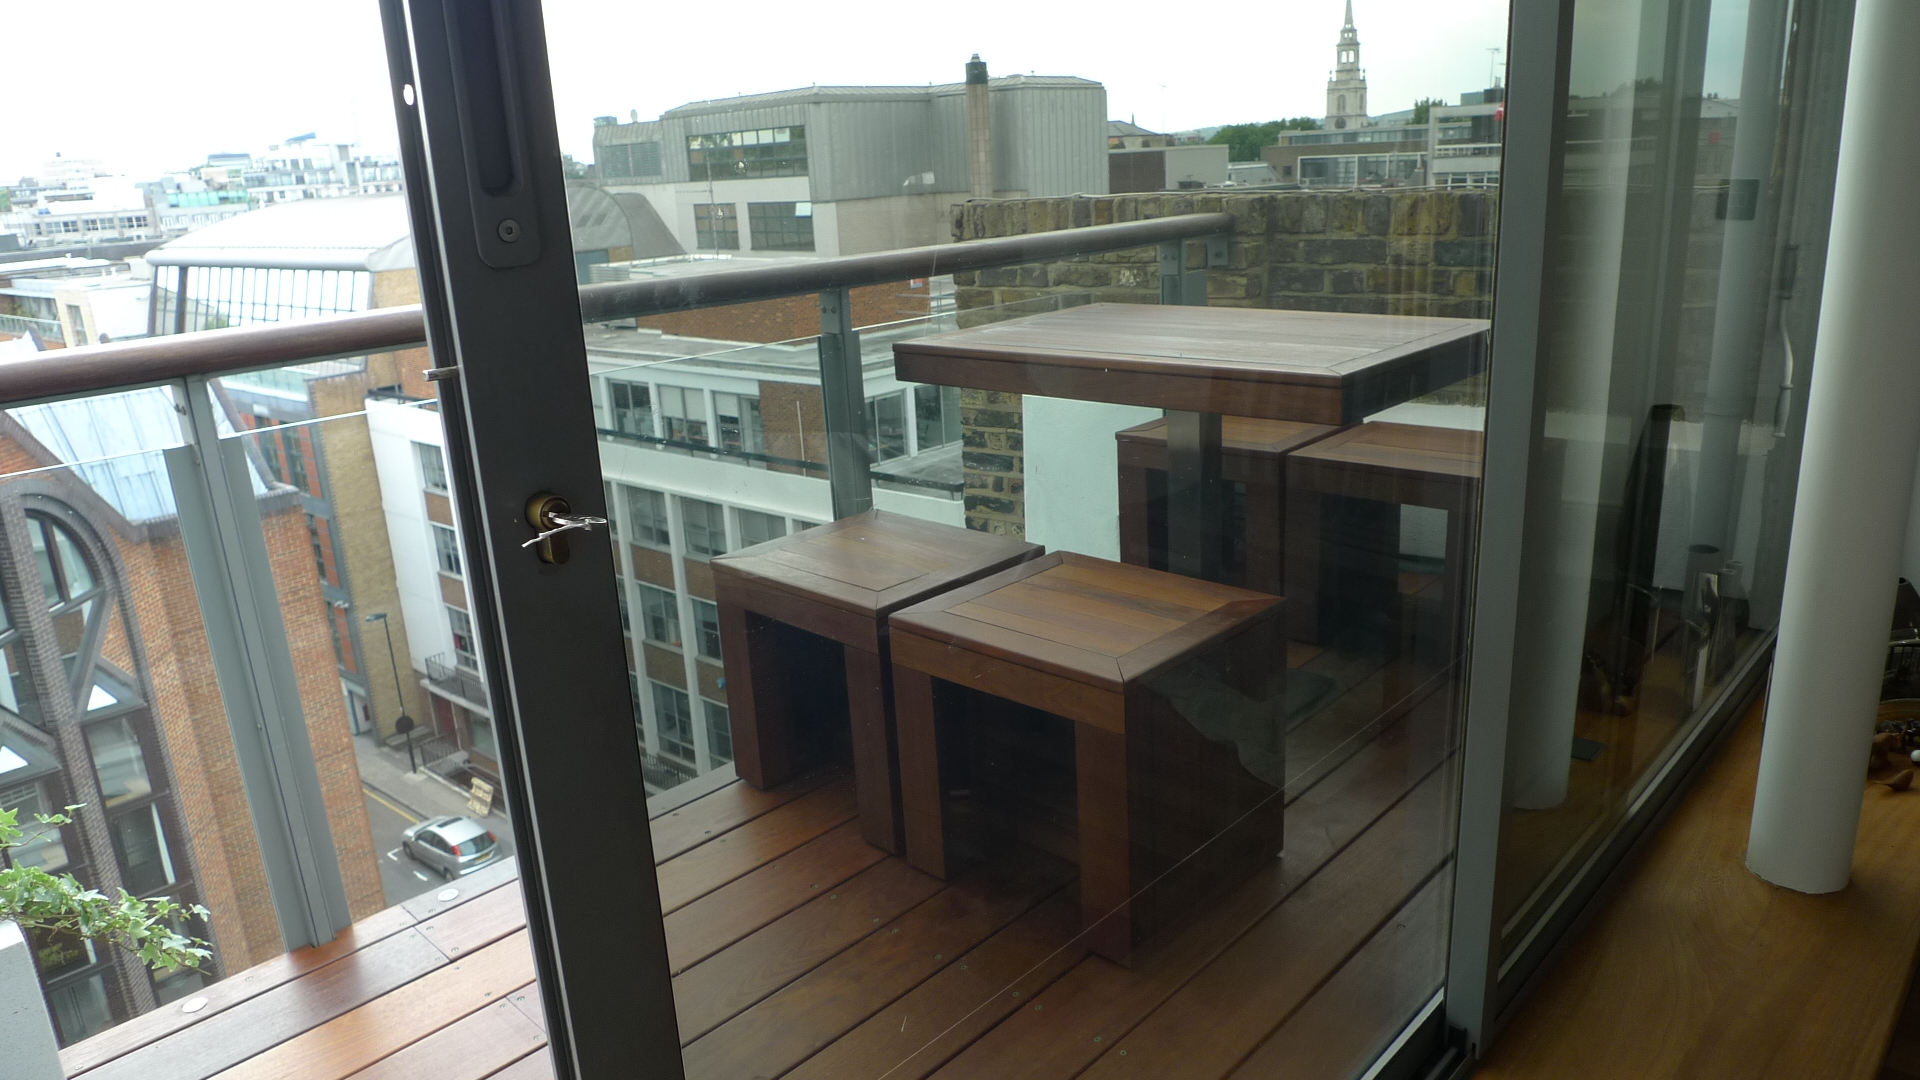 Ipe brazillian hardwood deck decking installation builders garden designers islington central london roof garden (15)